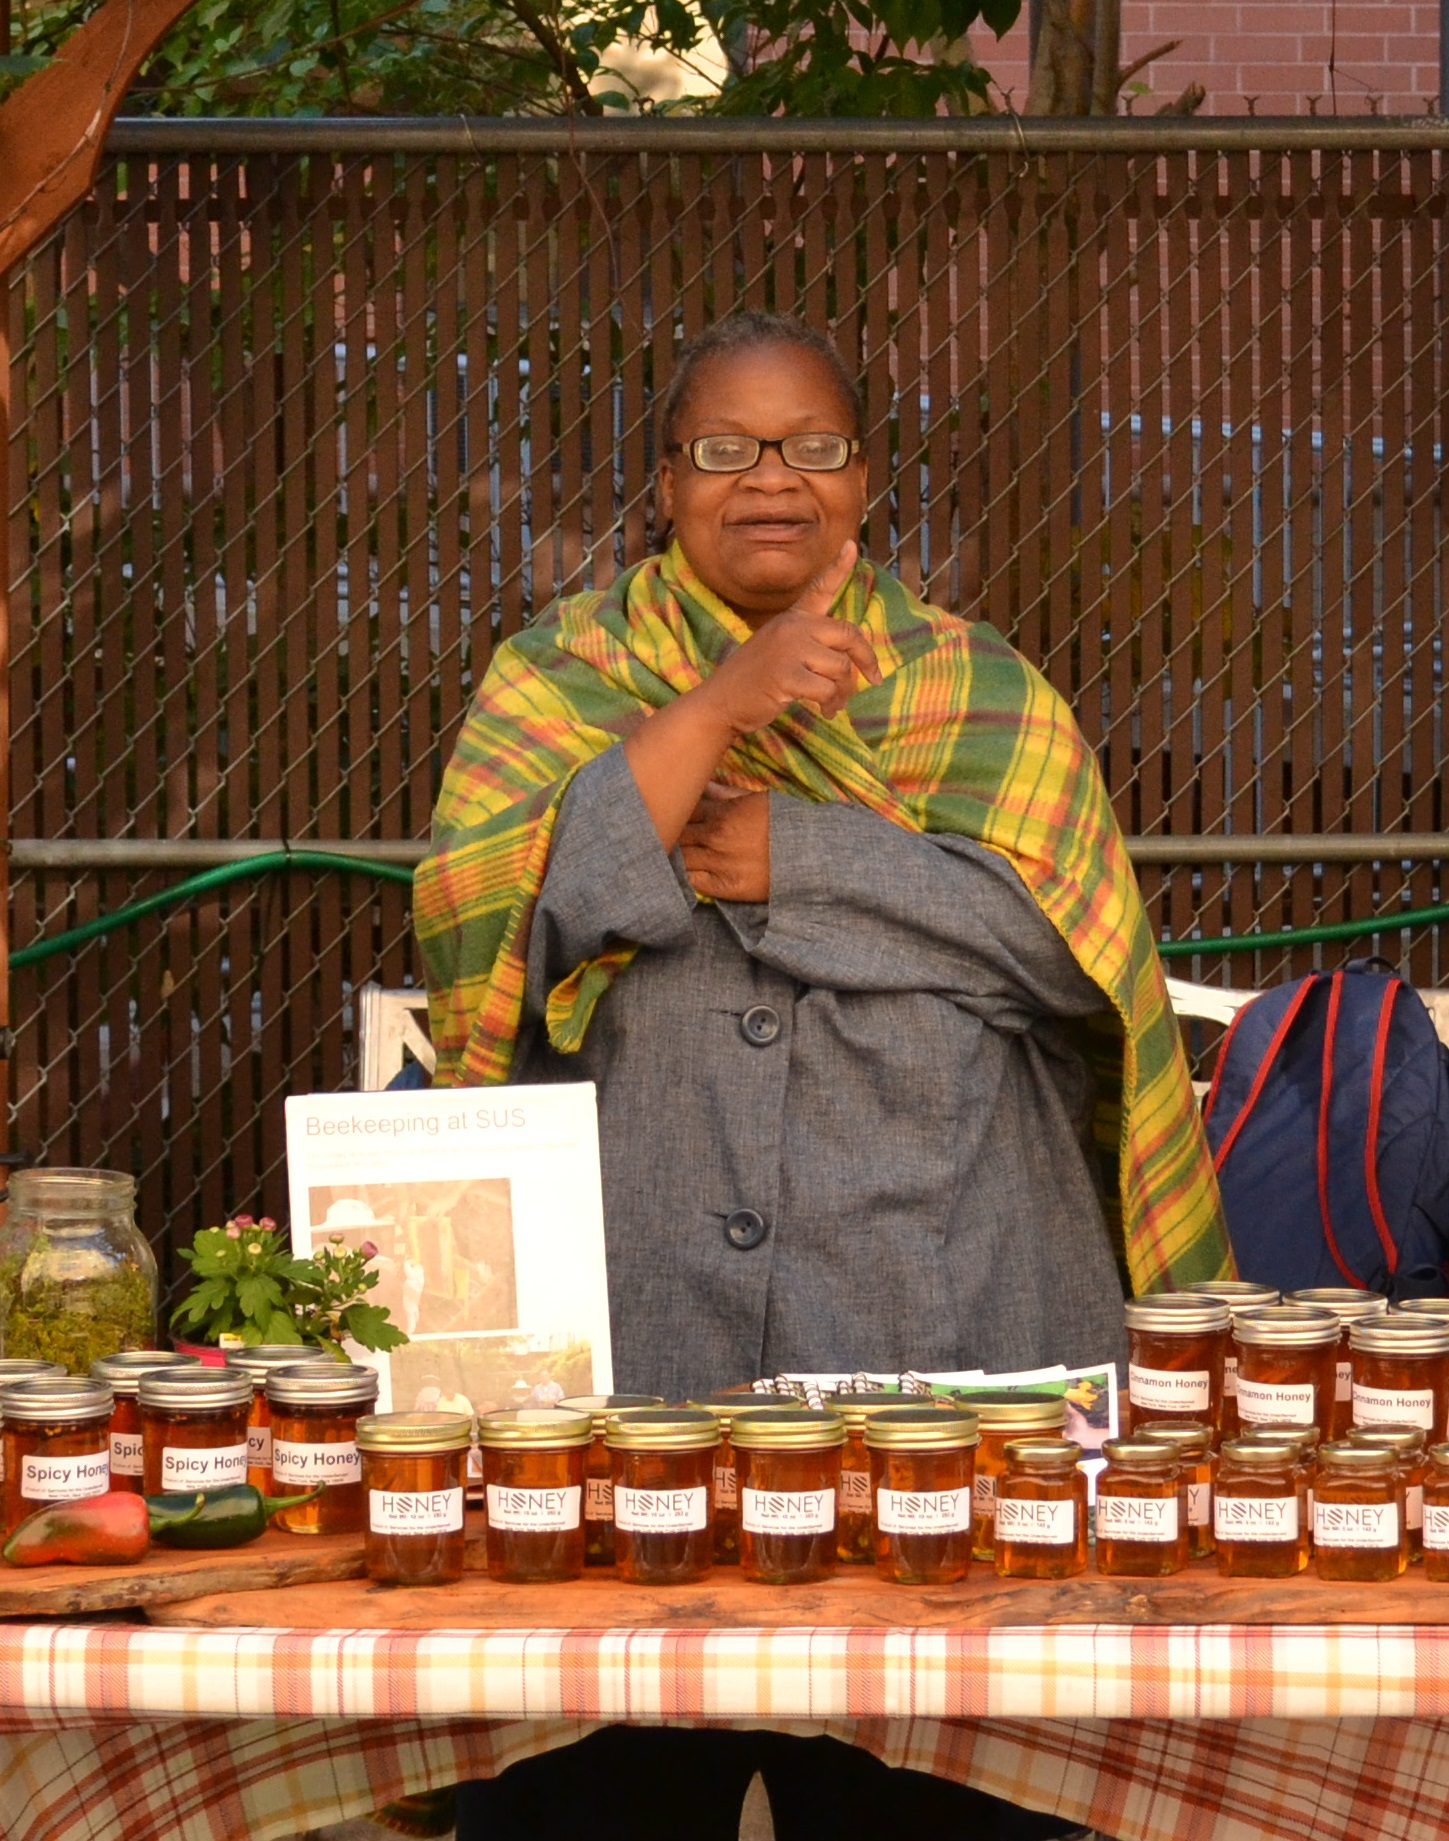 Urban Farmer Inspires Health In Others